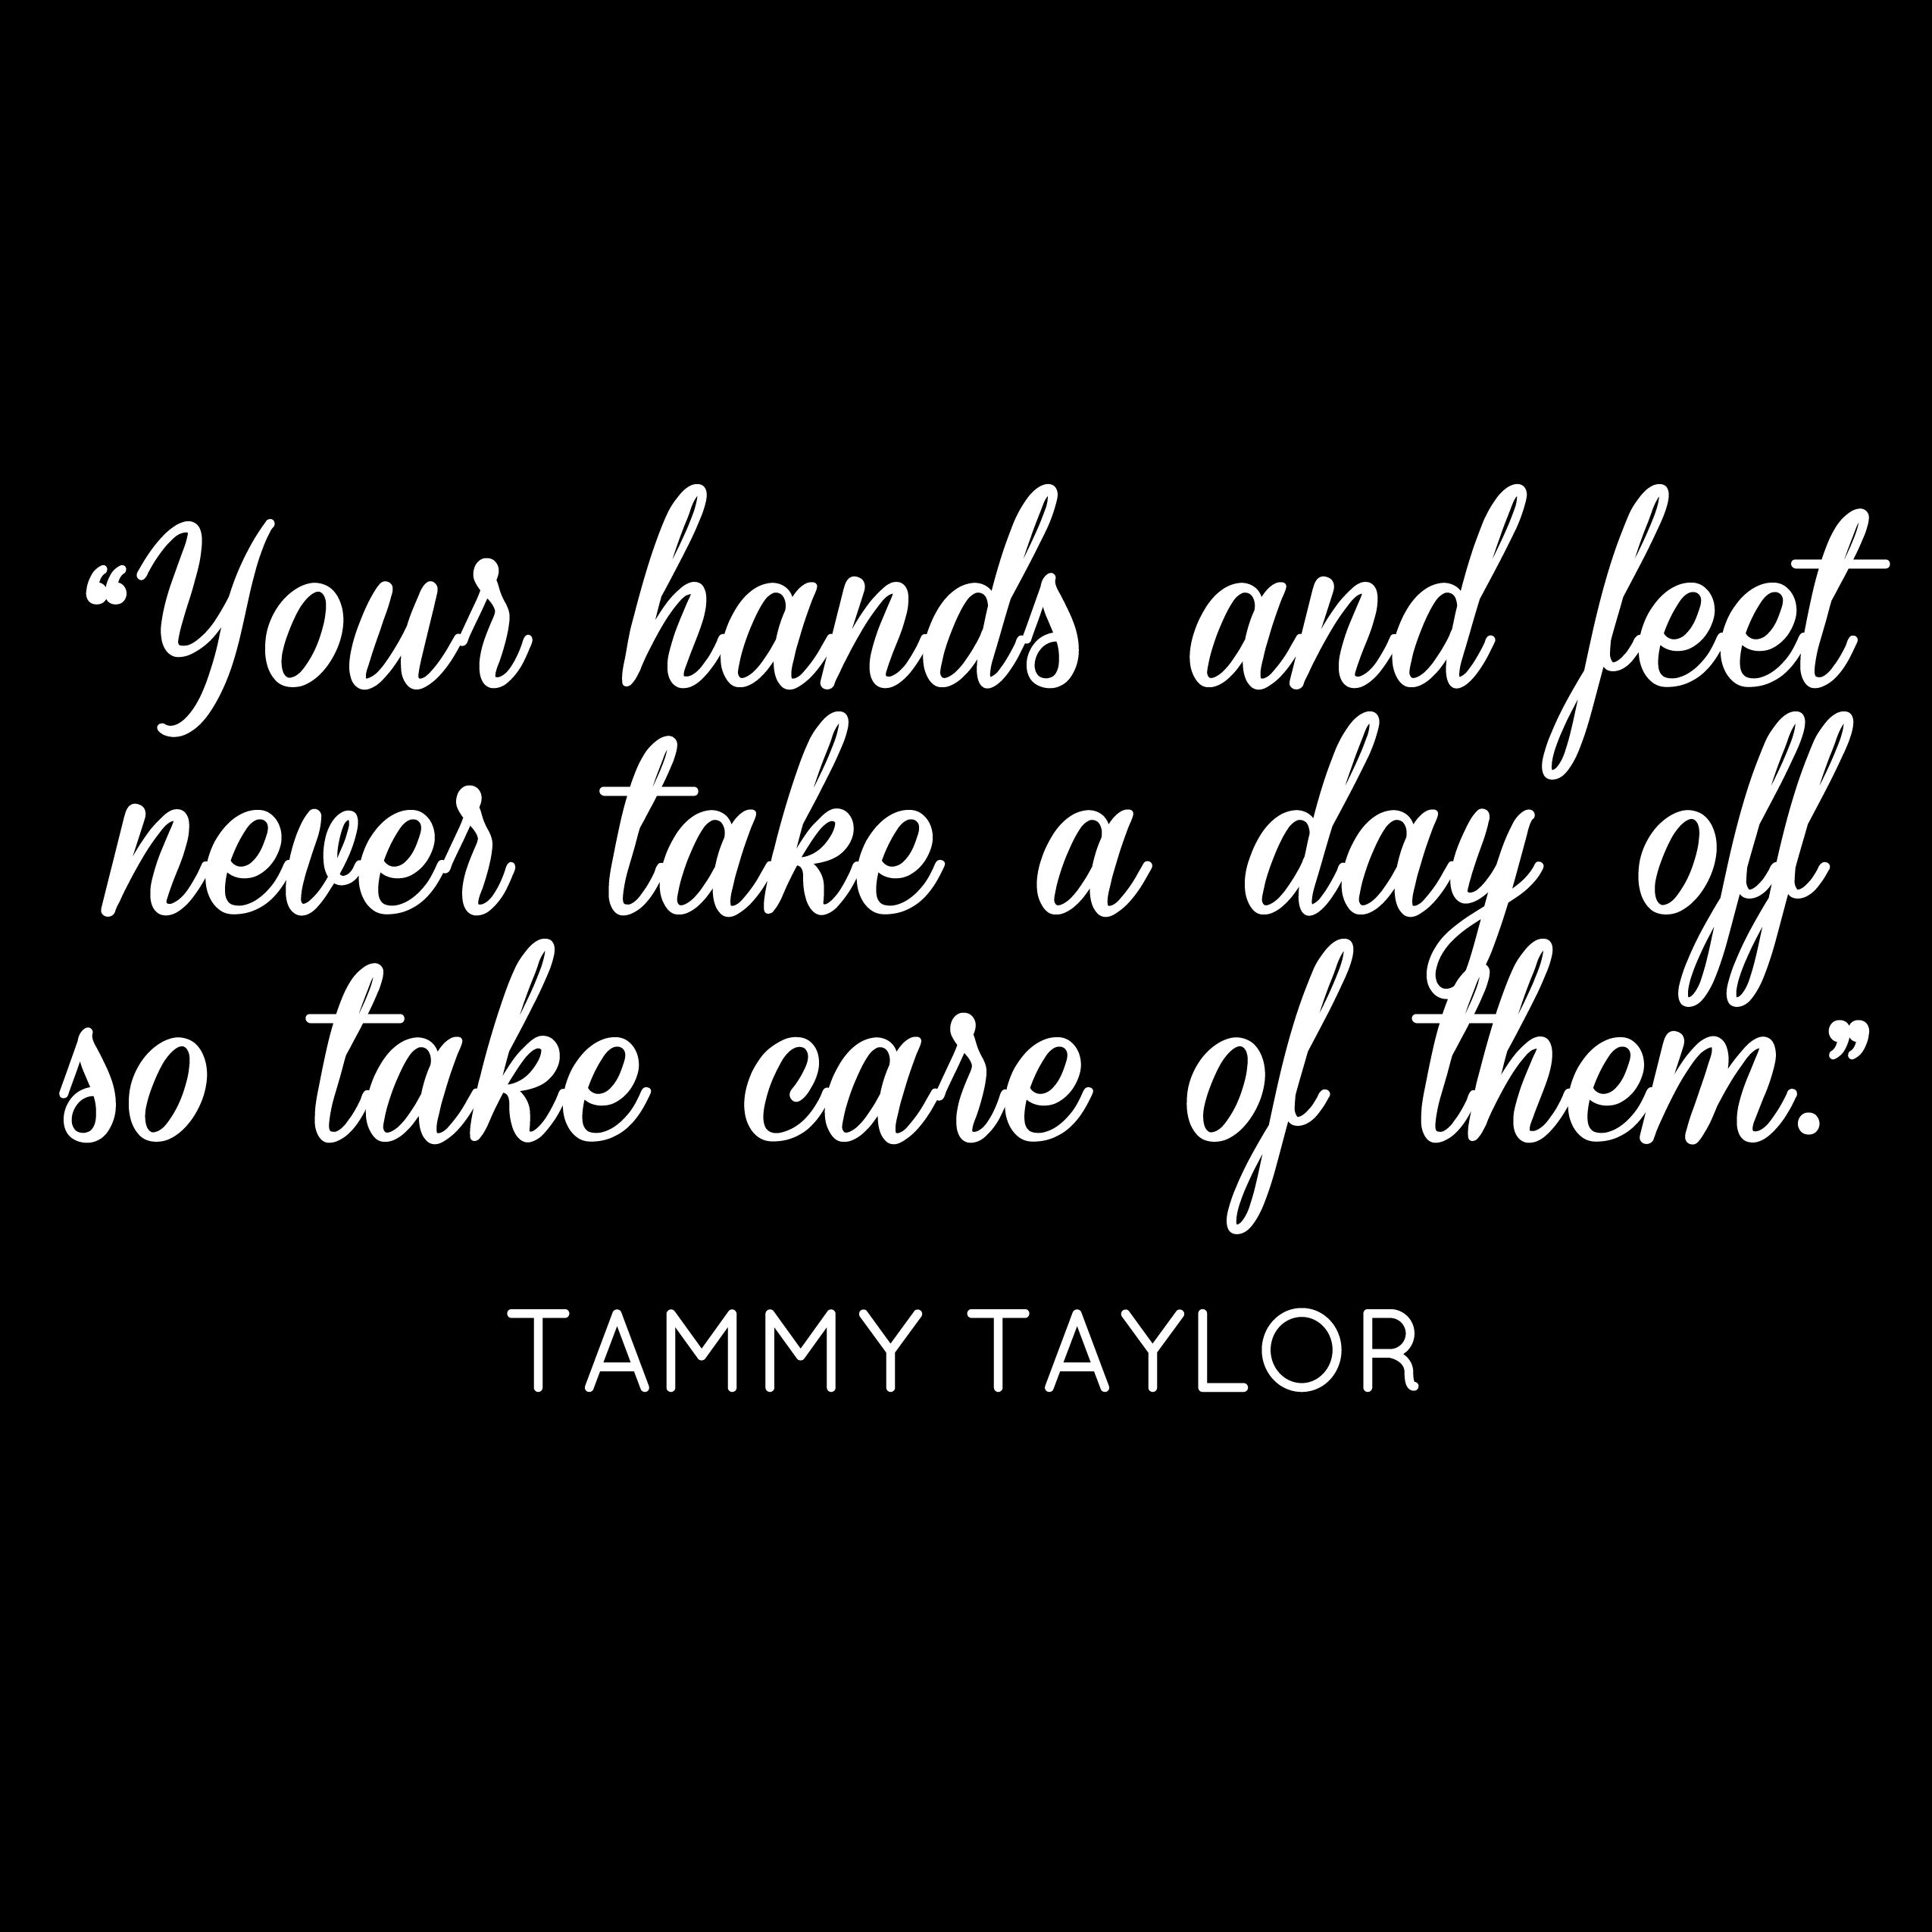 Tammy taylor nail quotes for Salon quotes and sayings